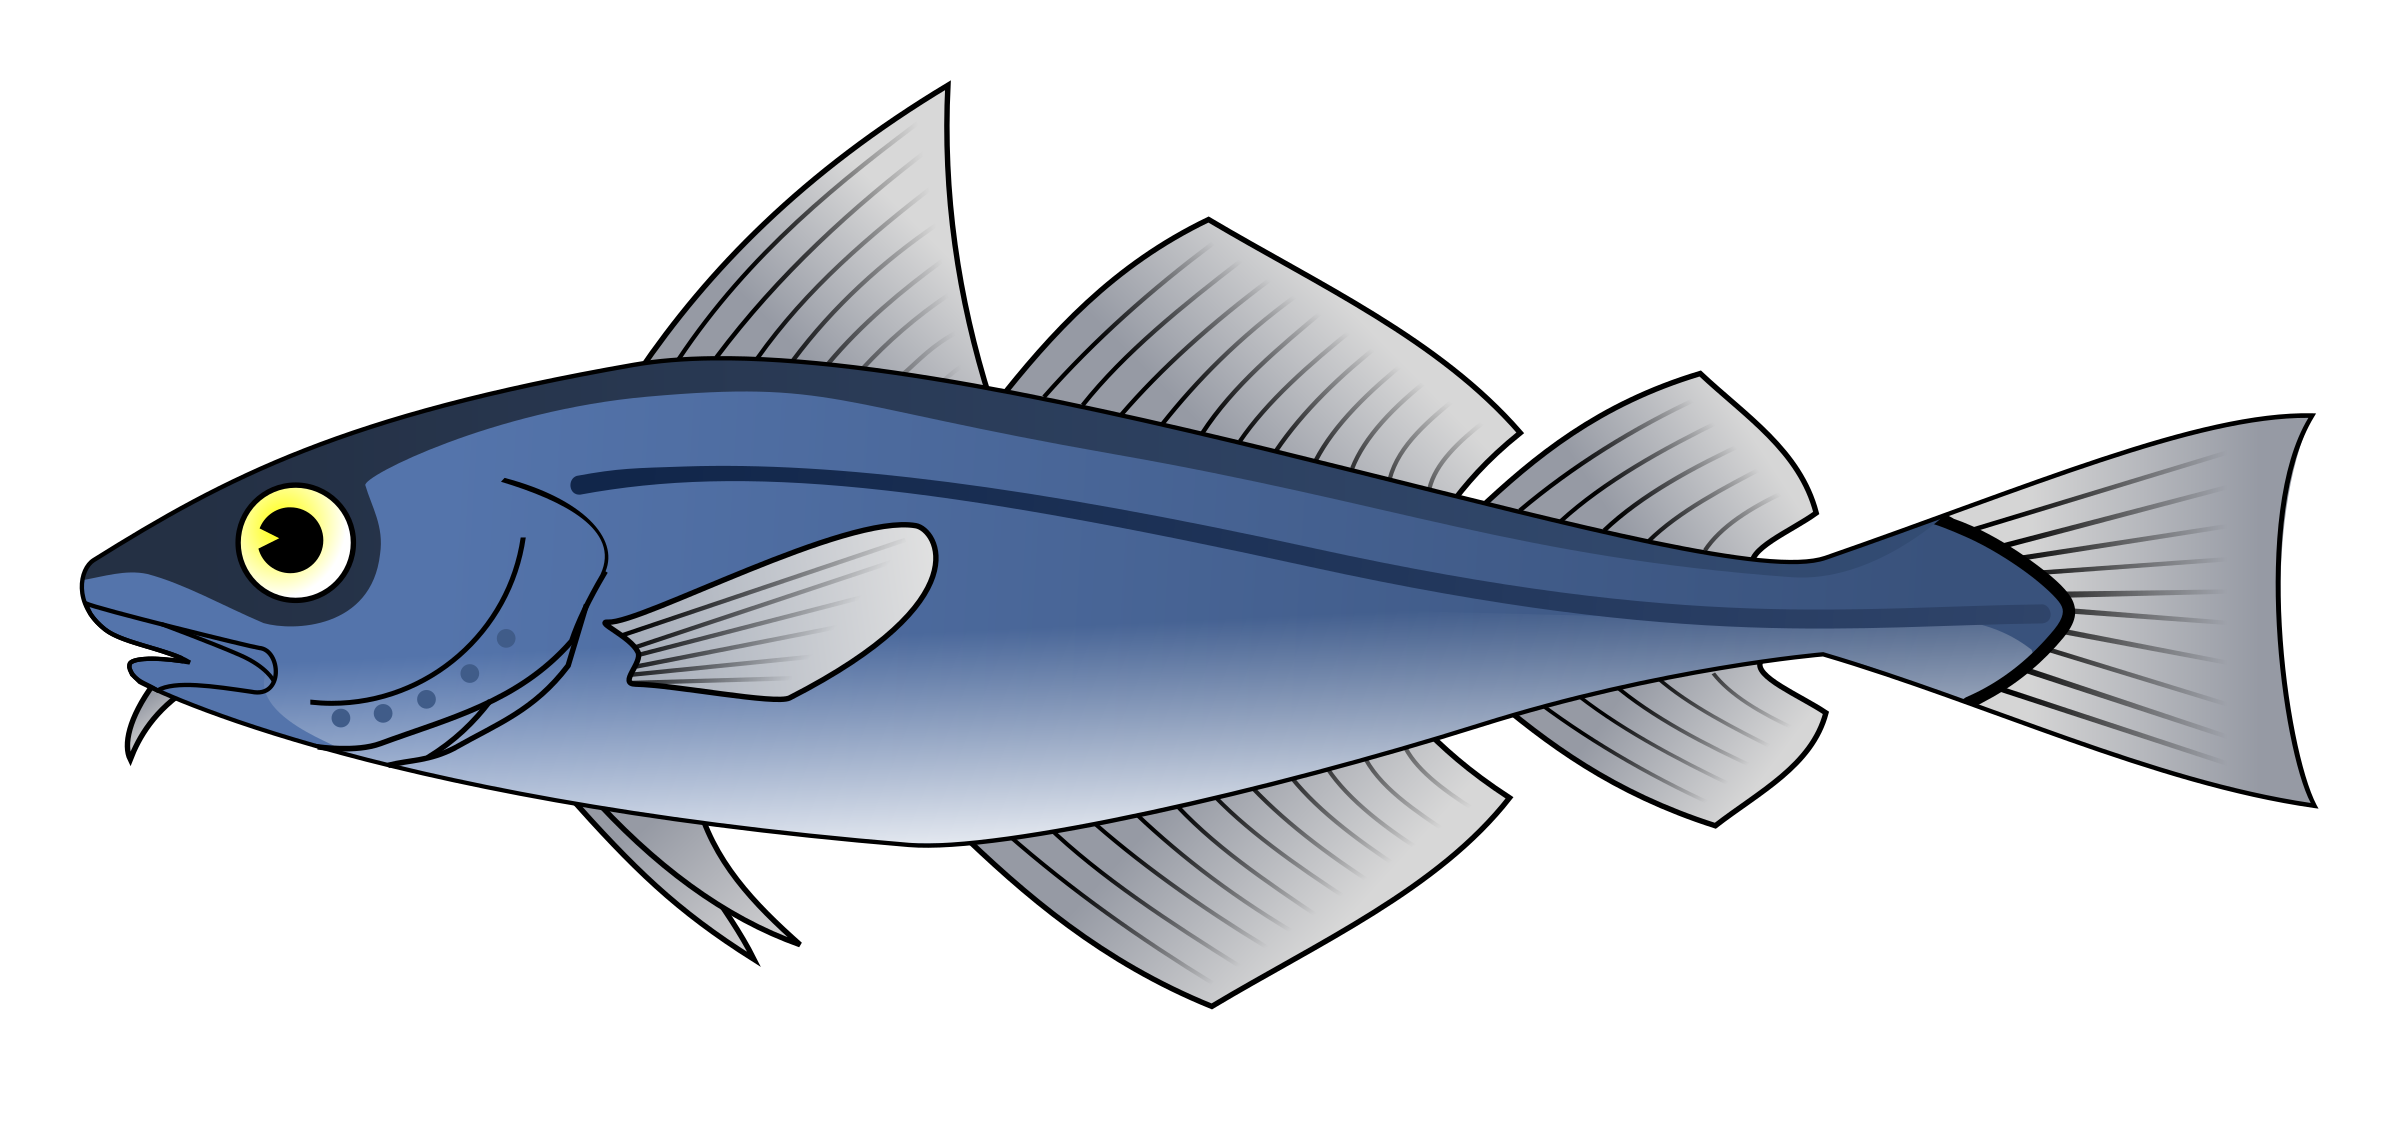 Fish food clipart graphic freeuse Clipart - Codfish graphic freeuse